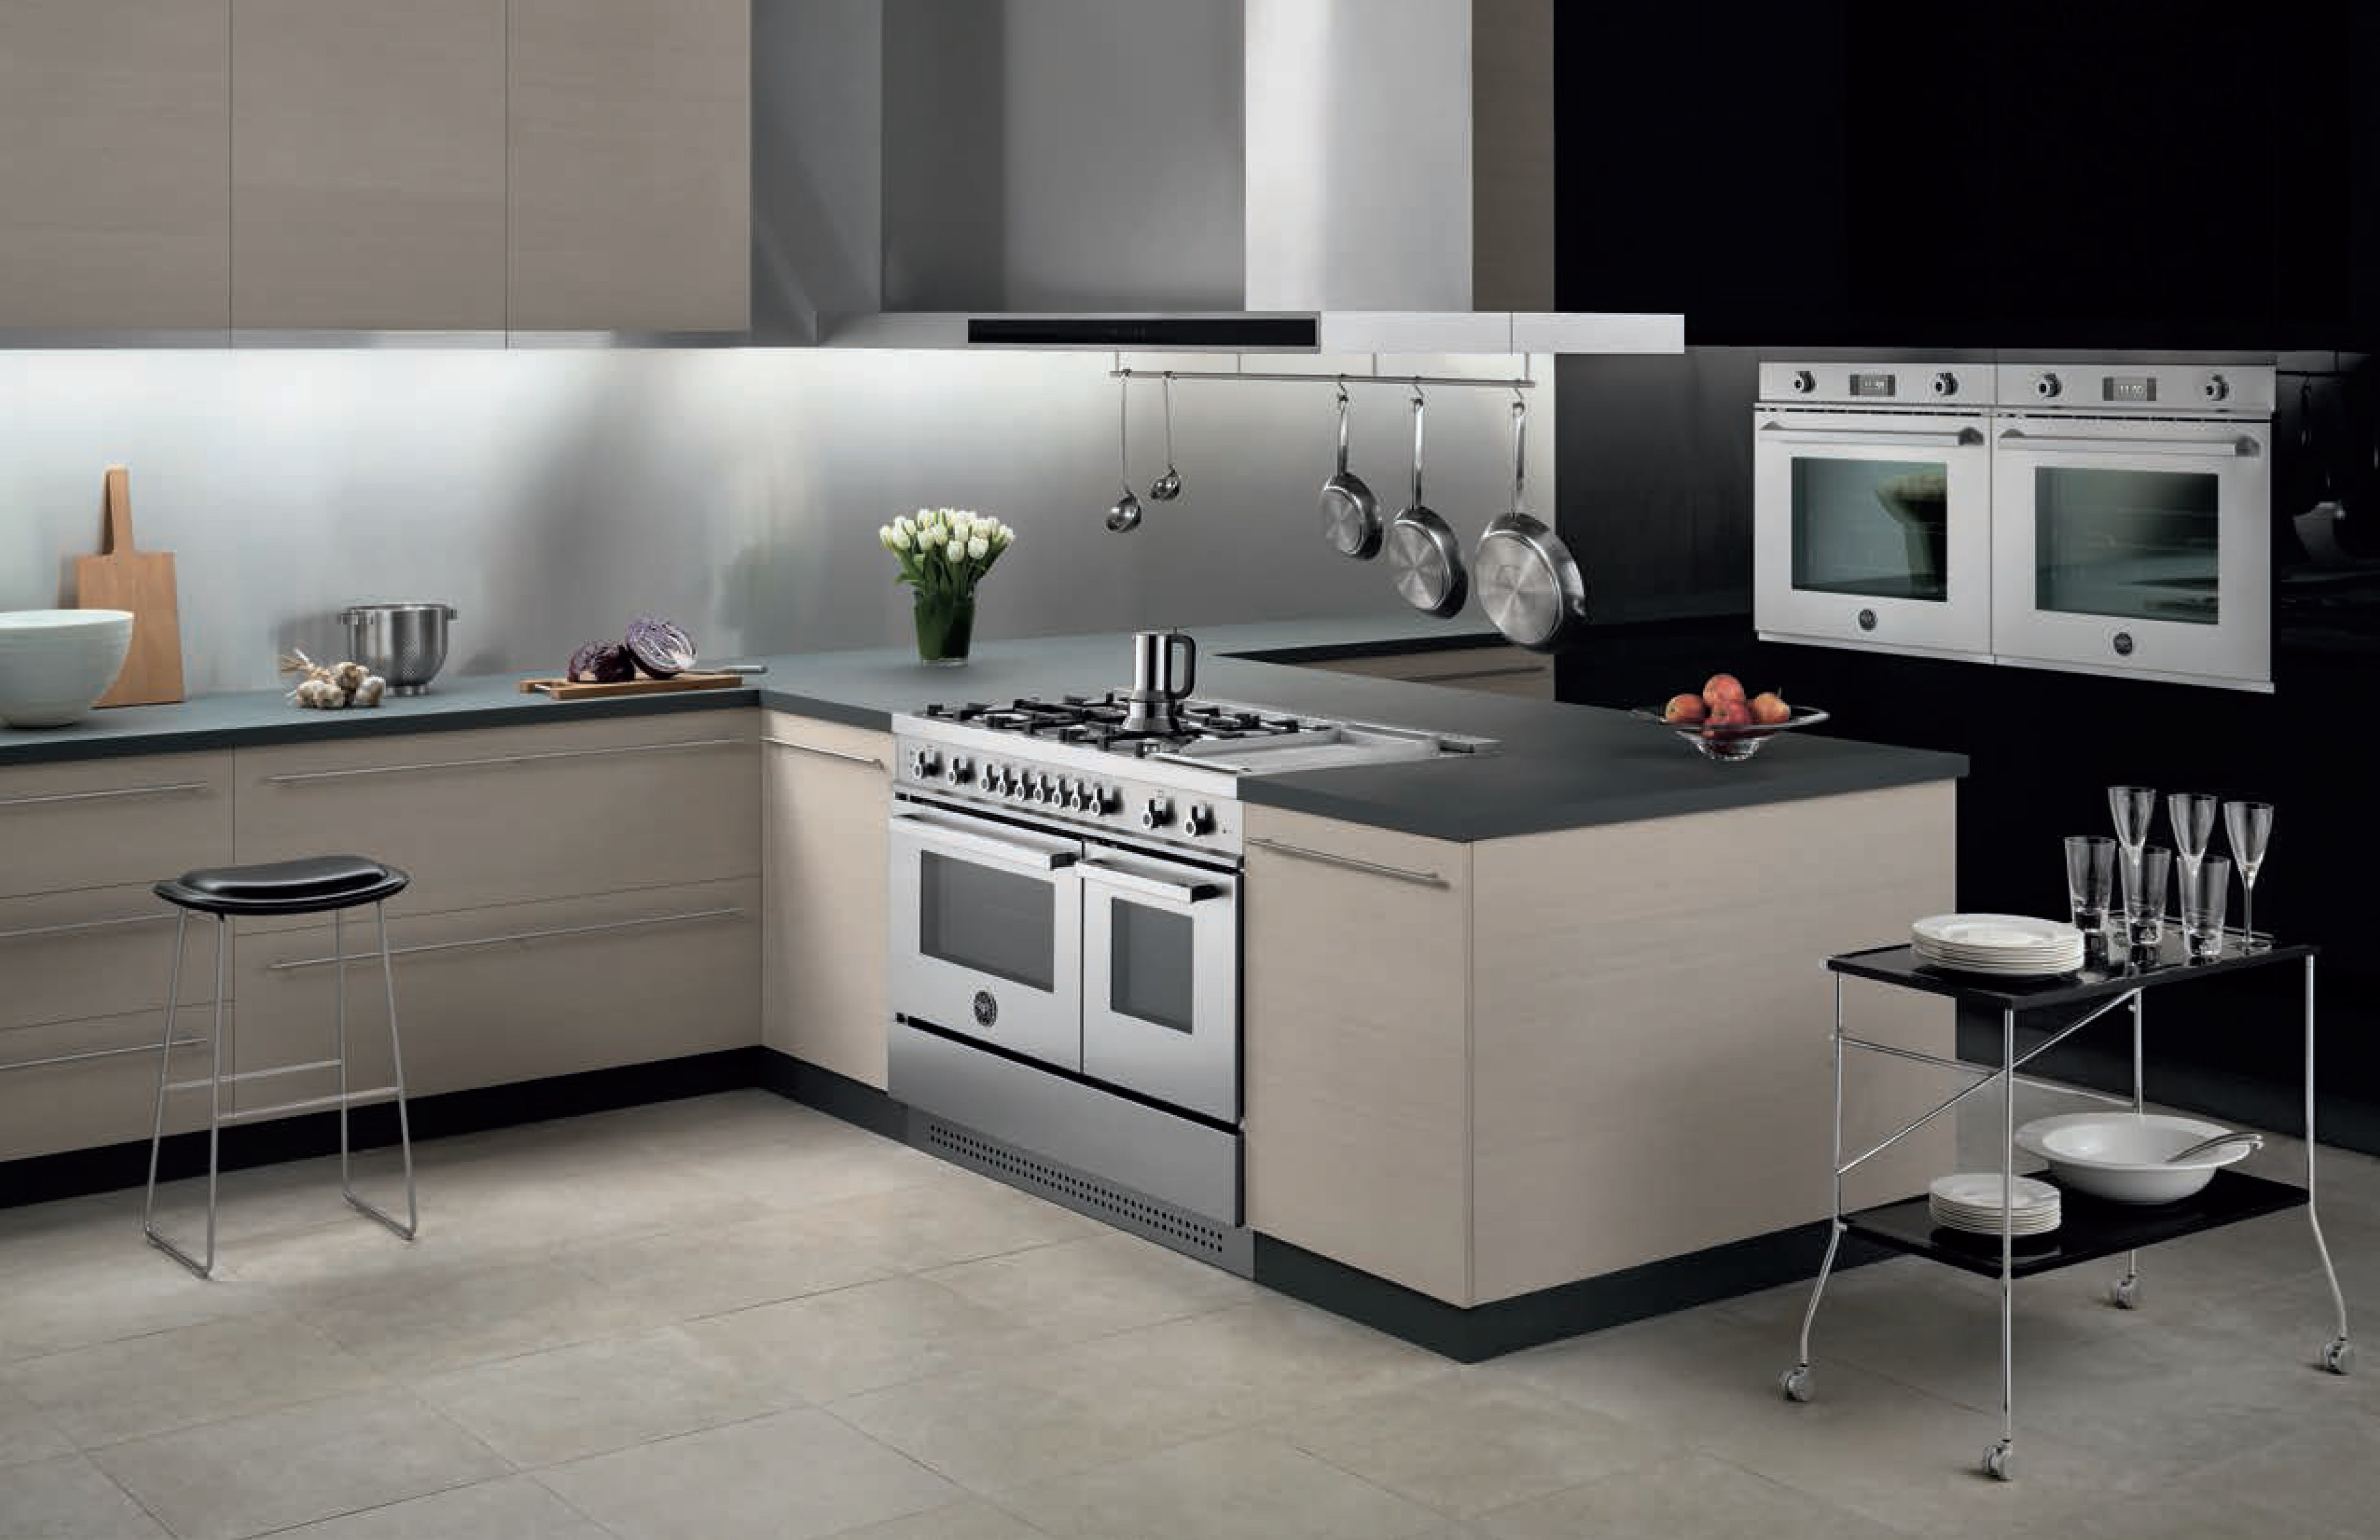 Another Professional Series kitchen, this time with stainless appliances.